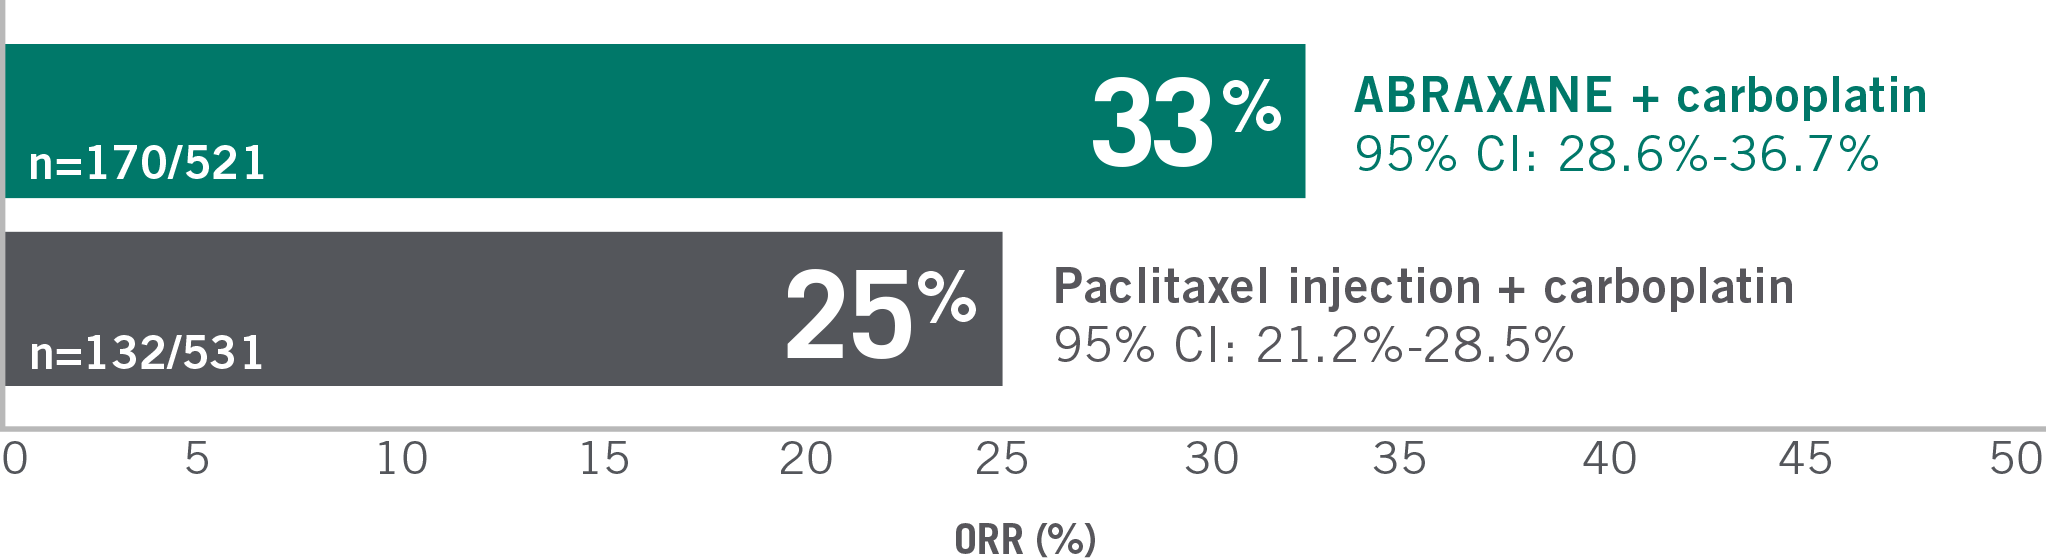 Overall response rate in the ITT population was 33% with ABRAXANE + carboplatin (n=170/521 [95% CI: 28.6%-36.7%]) vs 25% with paclitaxel injection + carboplatin (n=132/531 [95% CI: 21.2%-28.5%]) (P=0.005) - bar chart